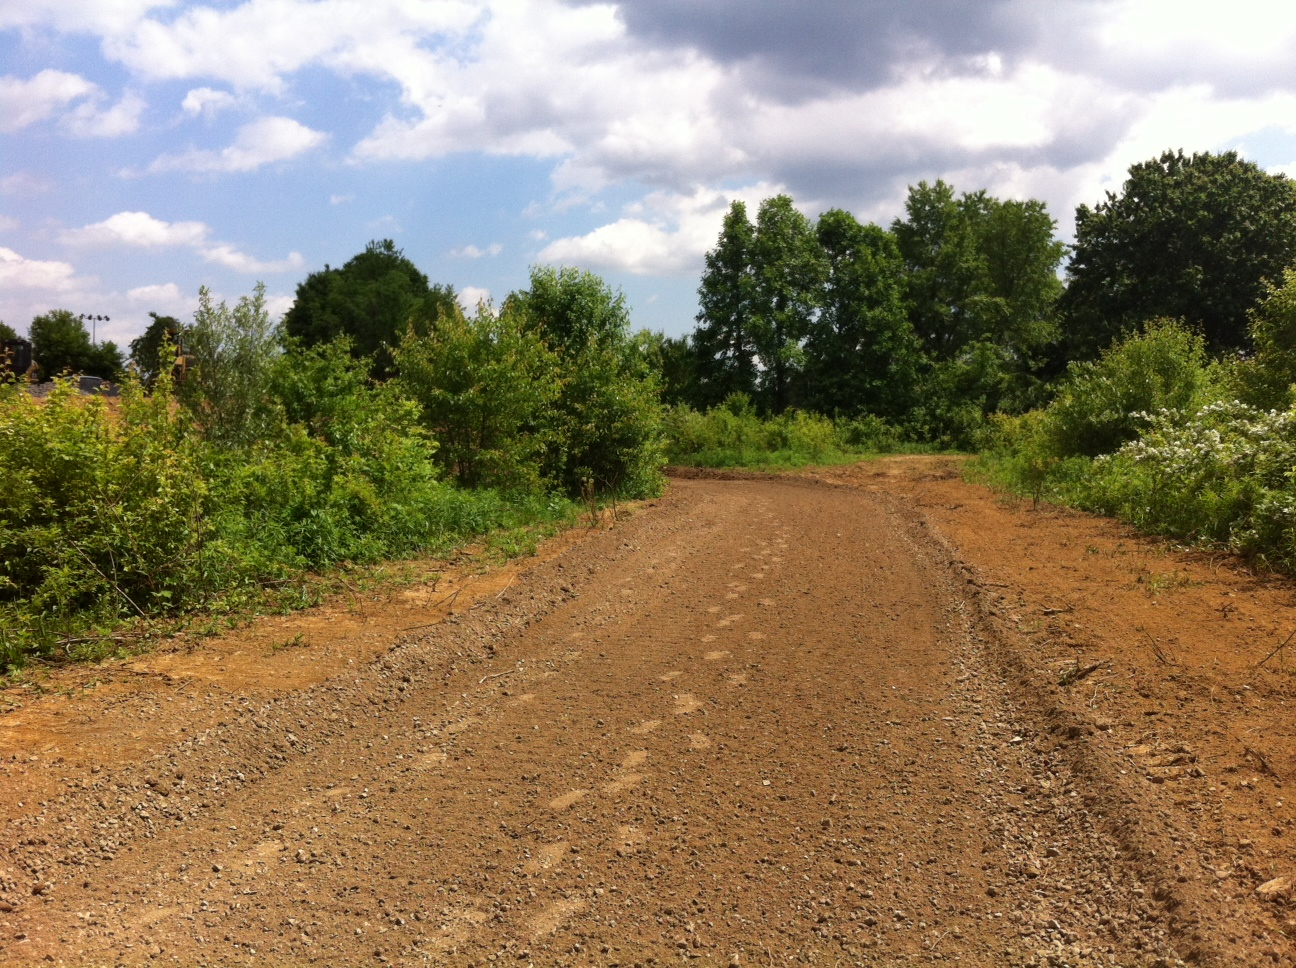 Progress on the Poquessing Creek Trail, Photo courtesy of Philadelphia Parks & Recreation